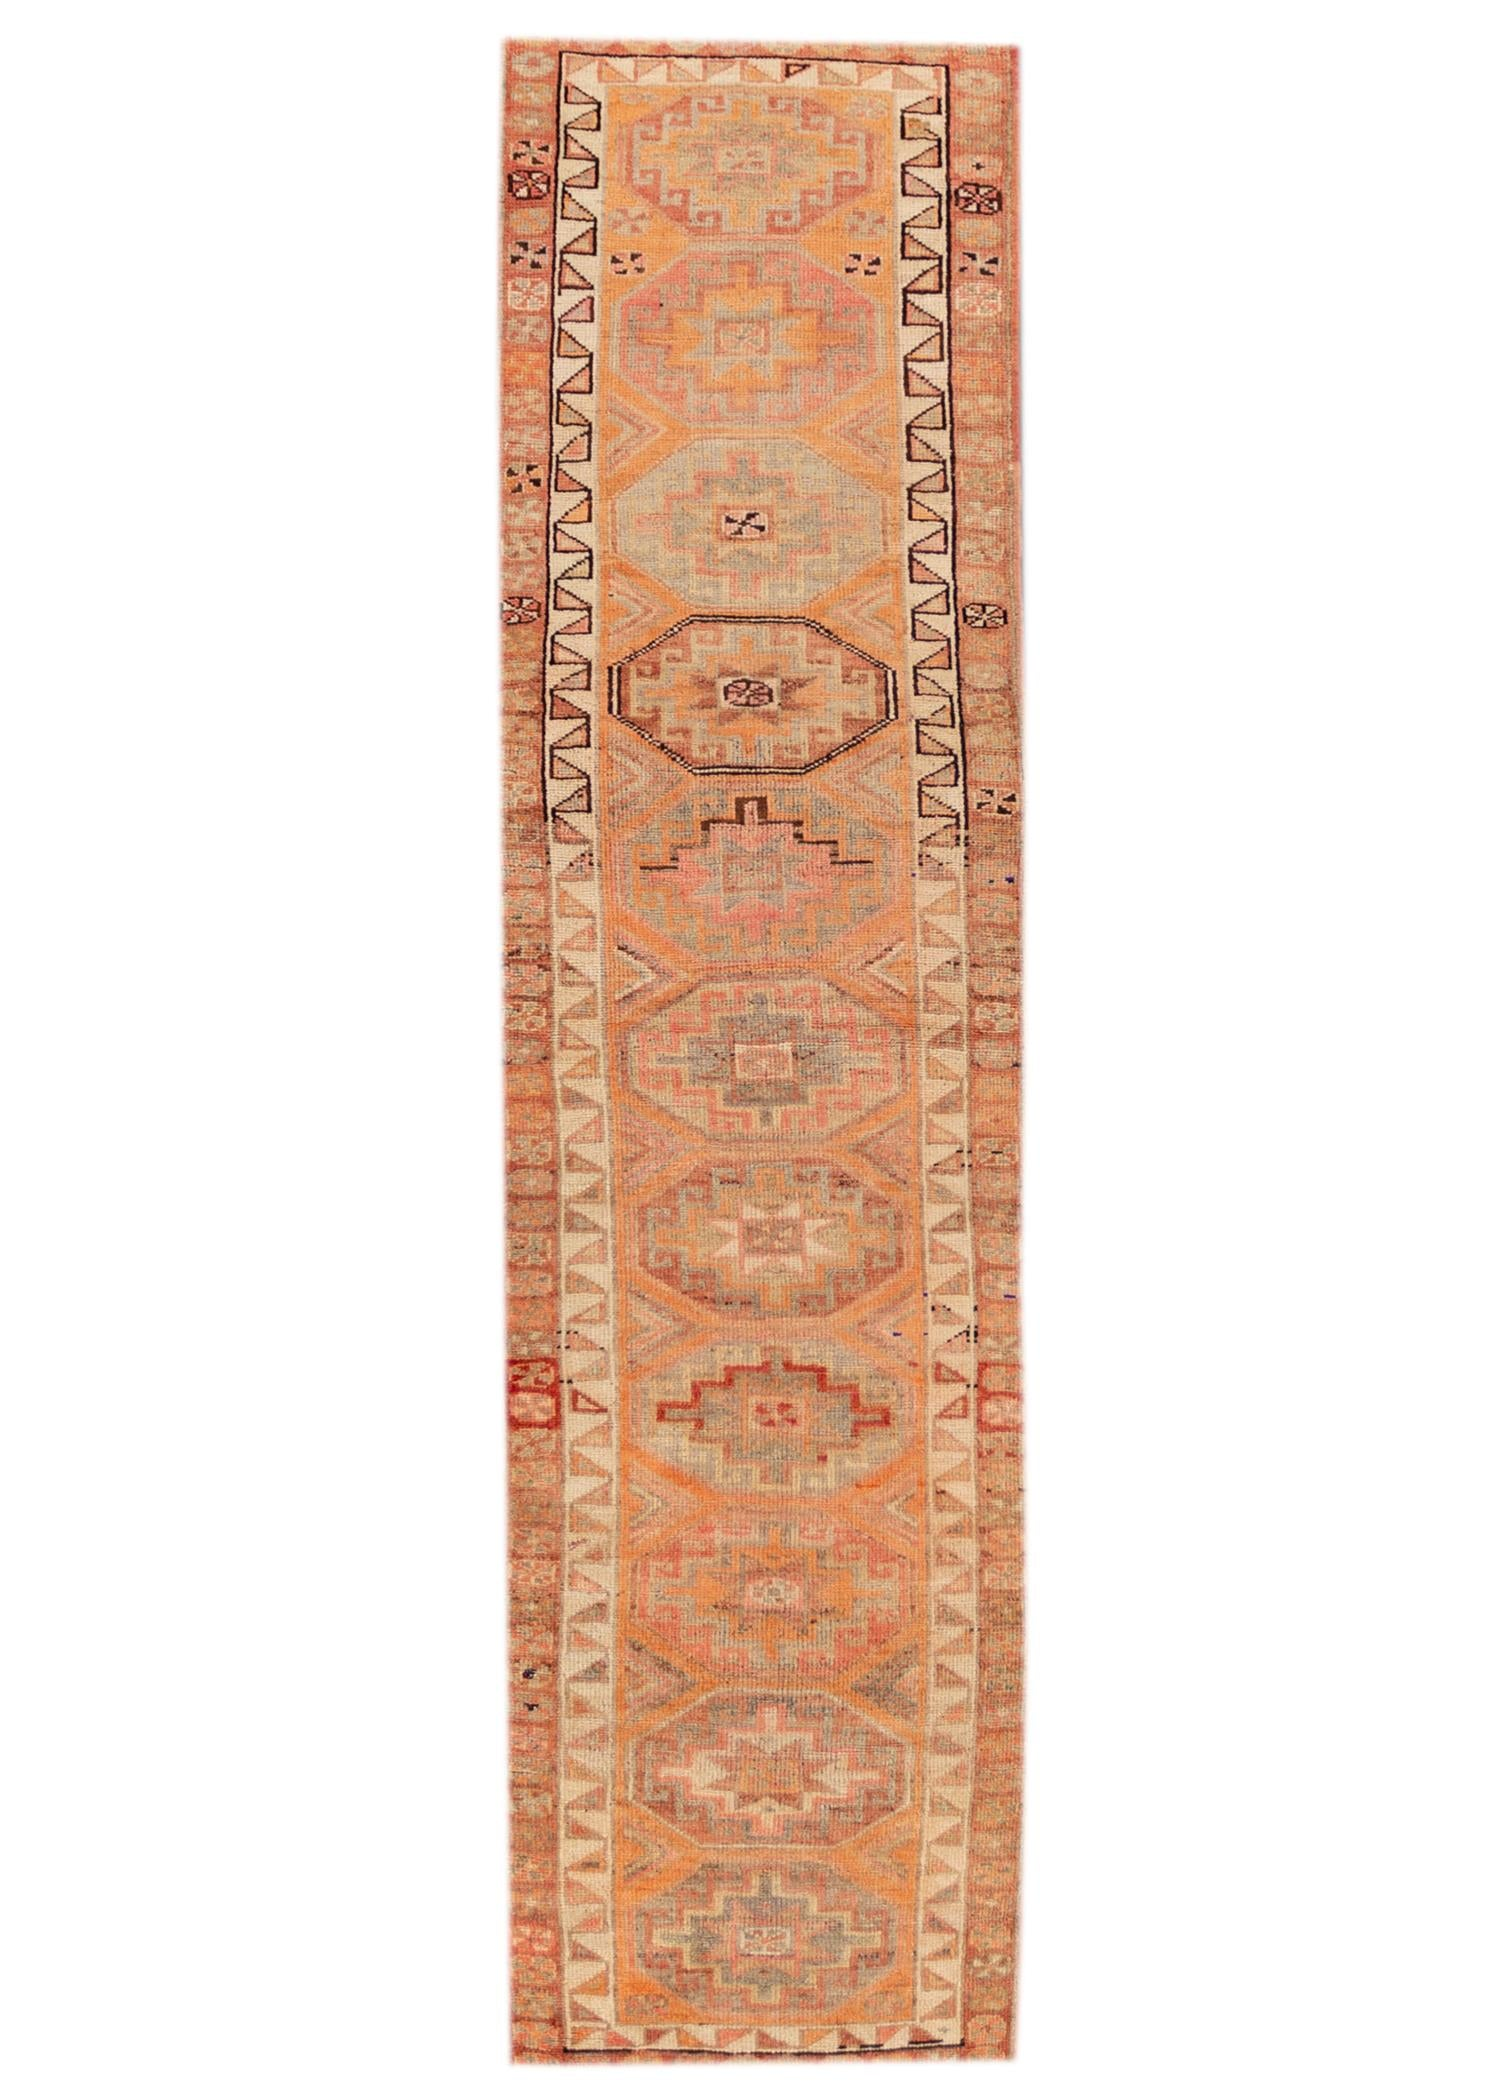 20th Century Vintage Turkish Runner Rug, 3X12